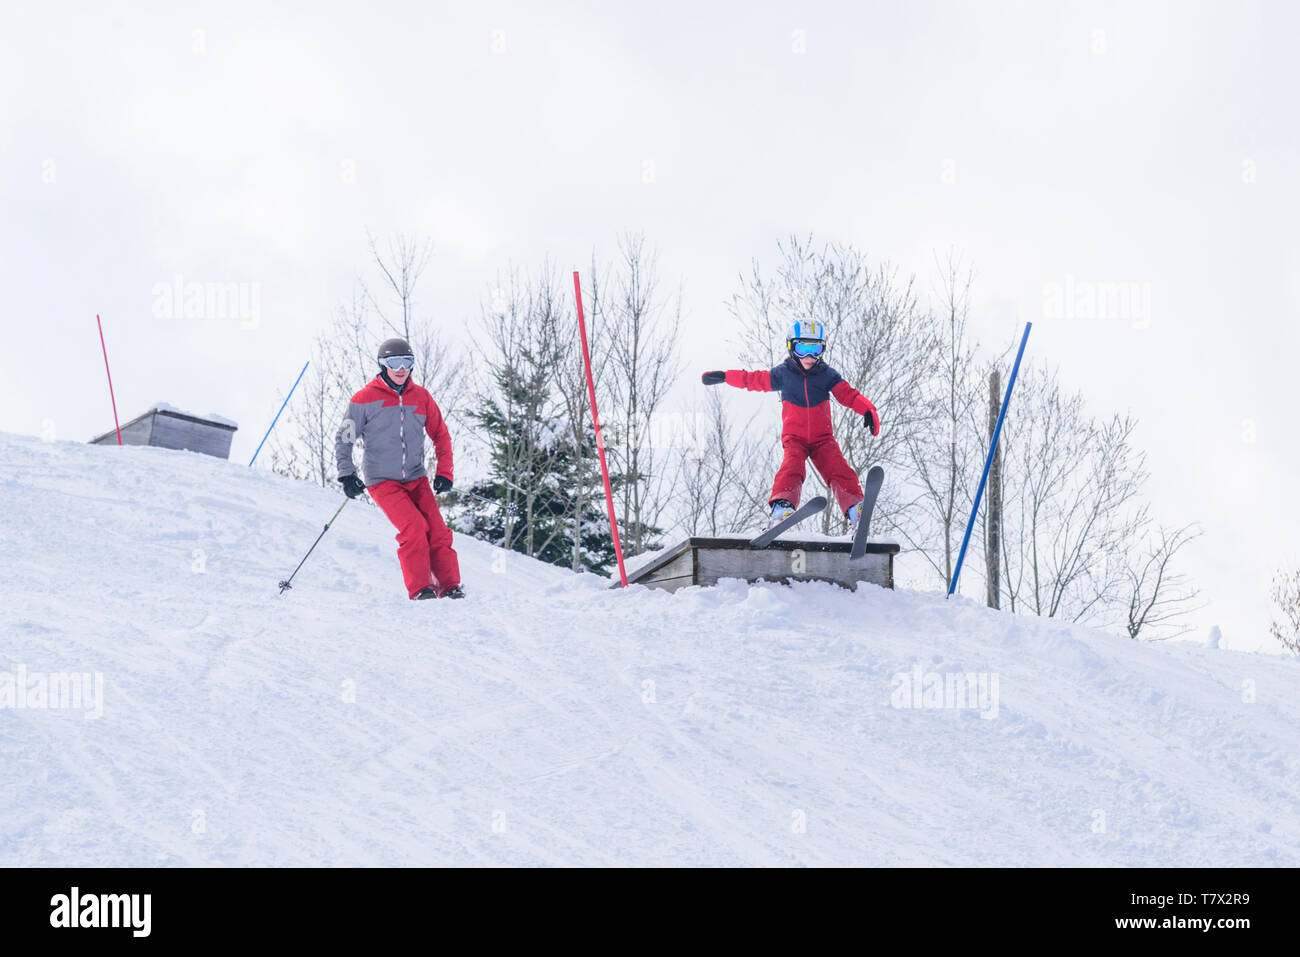 Little boy has a lot of fun on alpine skis while jumping over a ramp Stock Photo